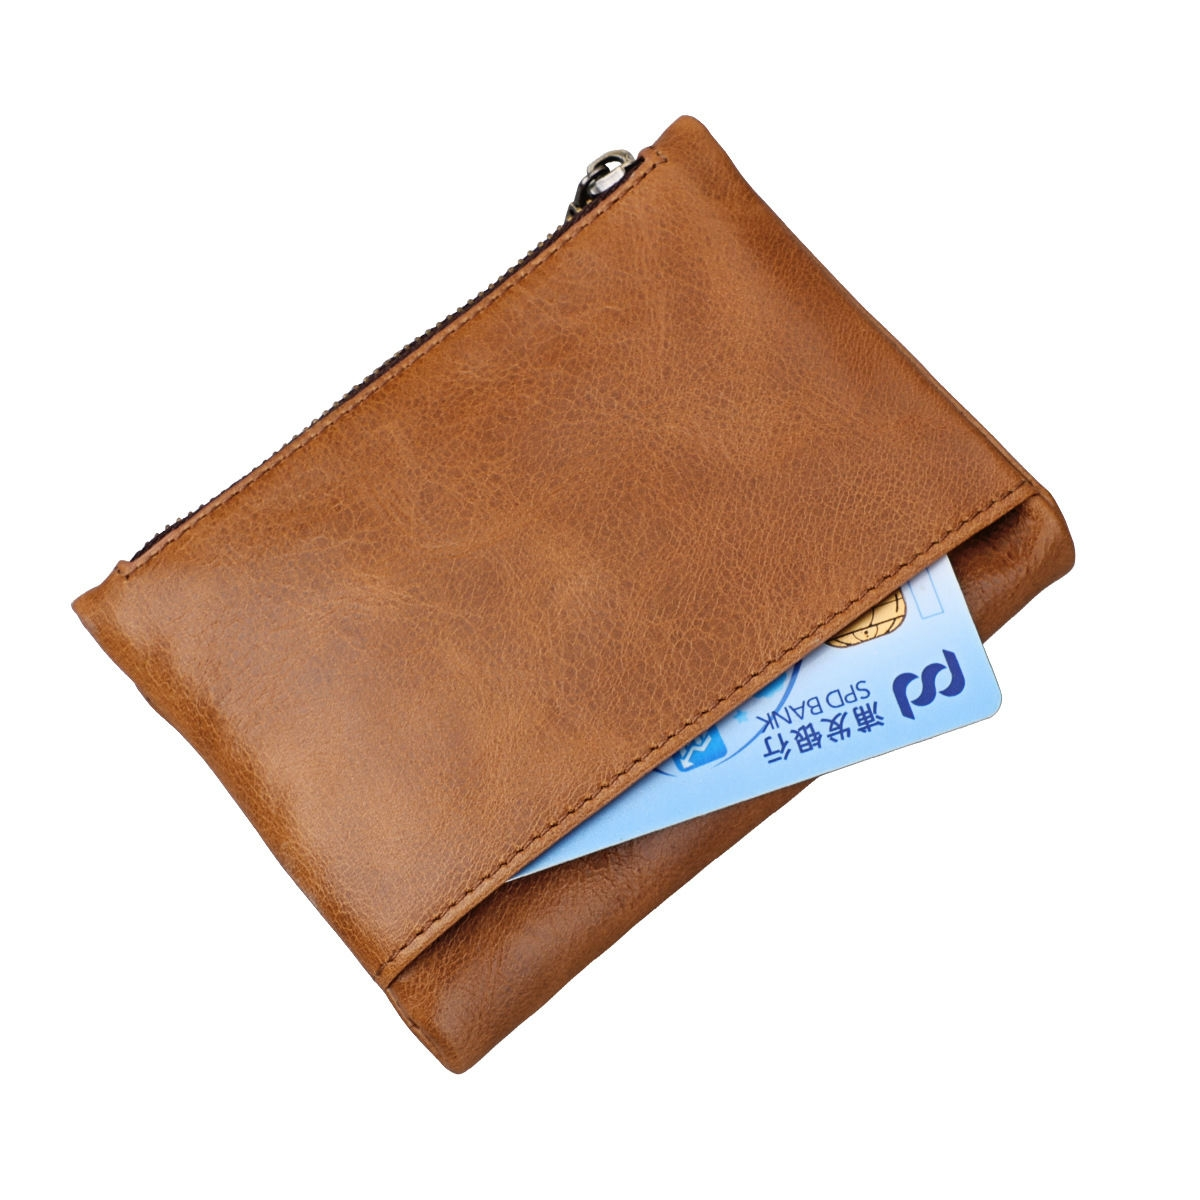 bdc92199ae80 Wallet Leather Men's Wallet Anti-theft Brush RFID Head Co